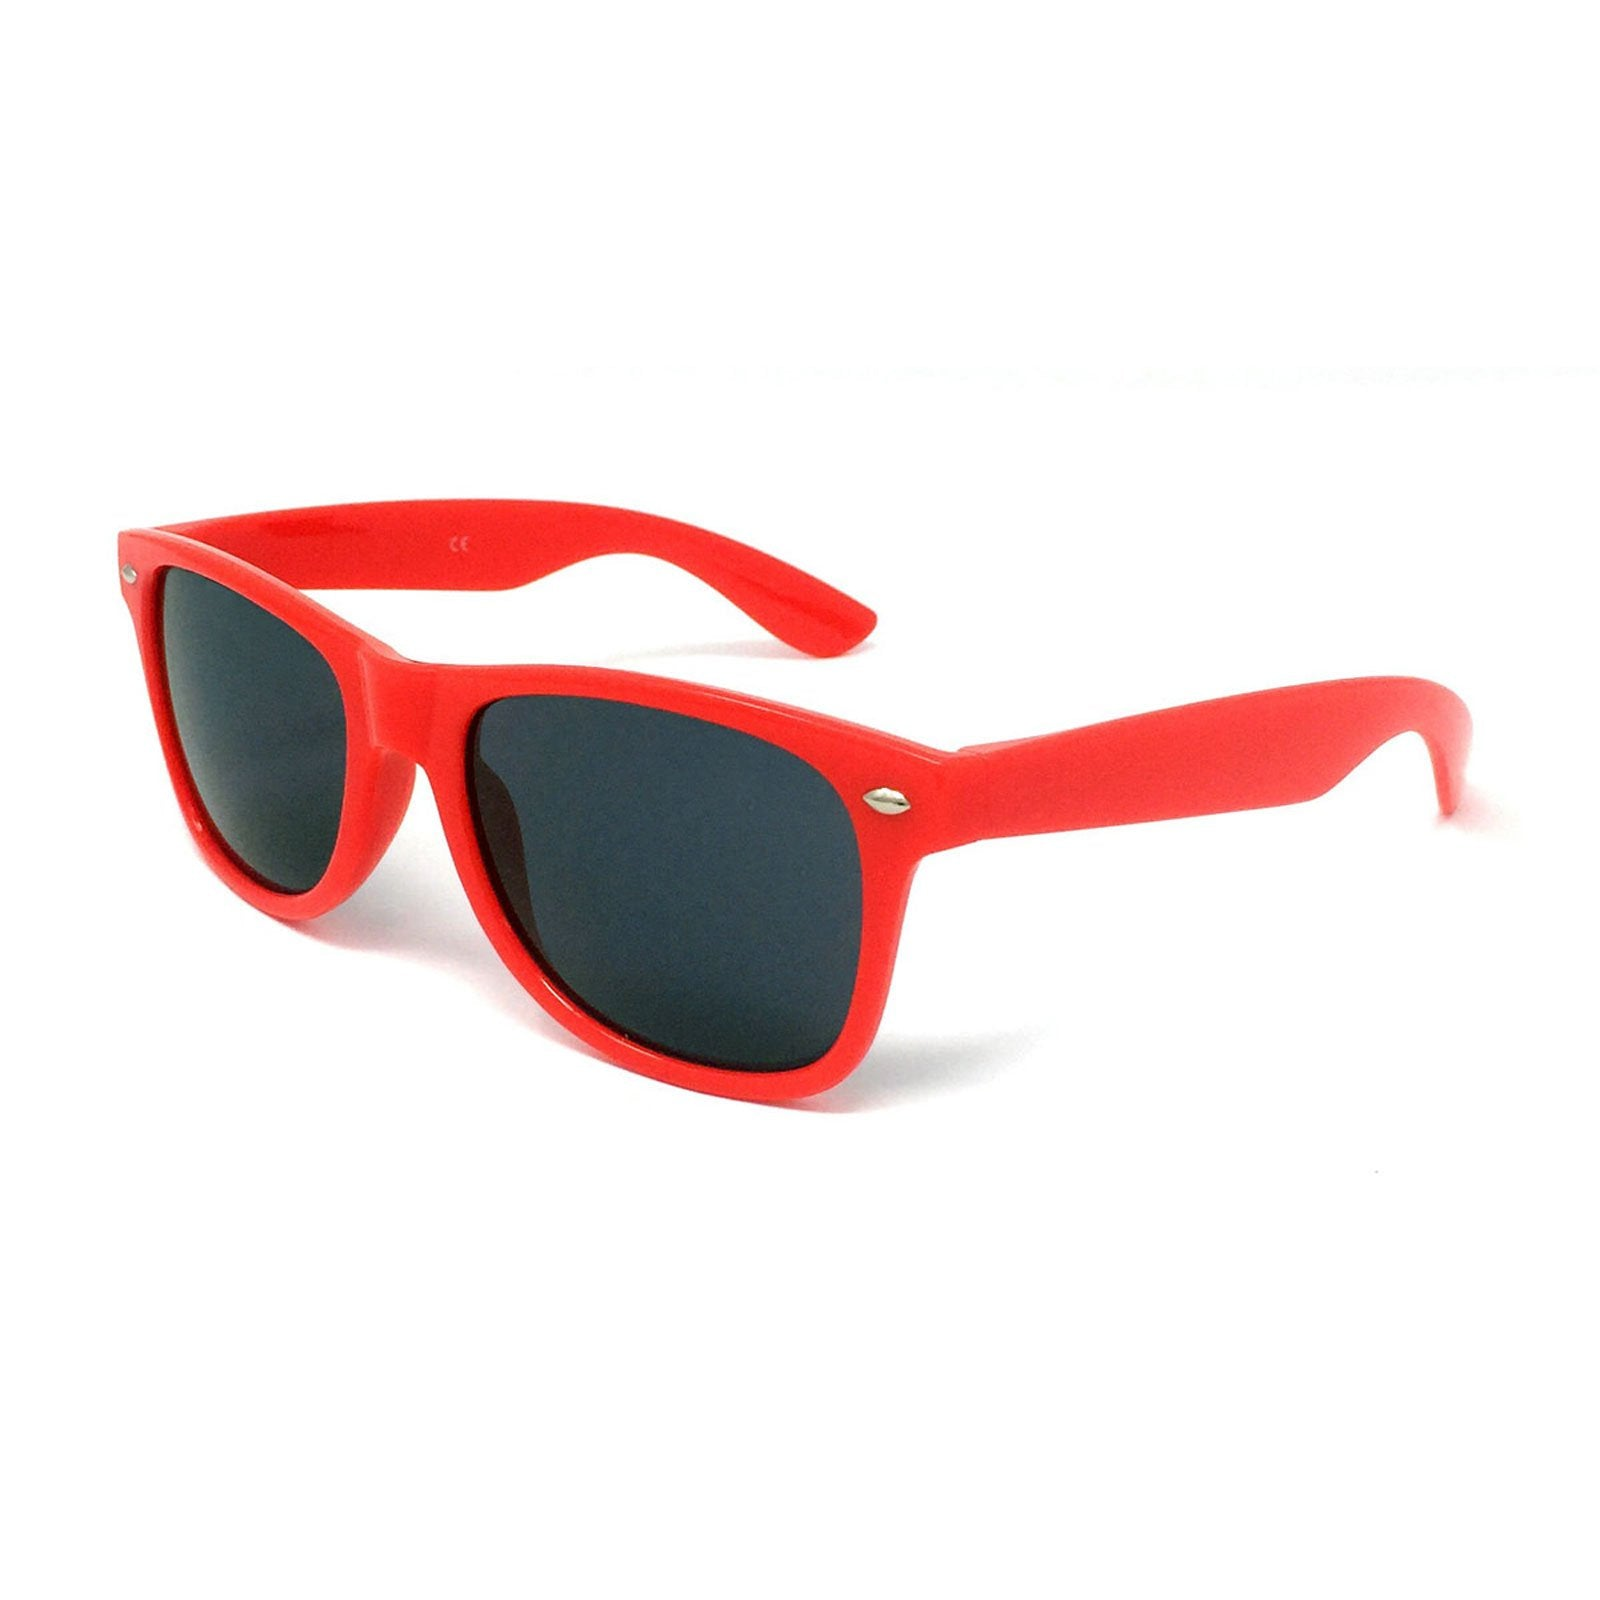 Wholesale Classic Sunglasses - Red Frame, Black Lens